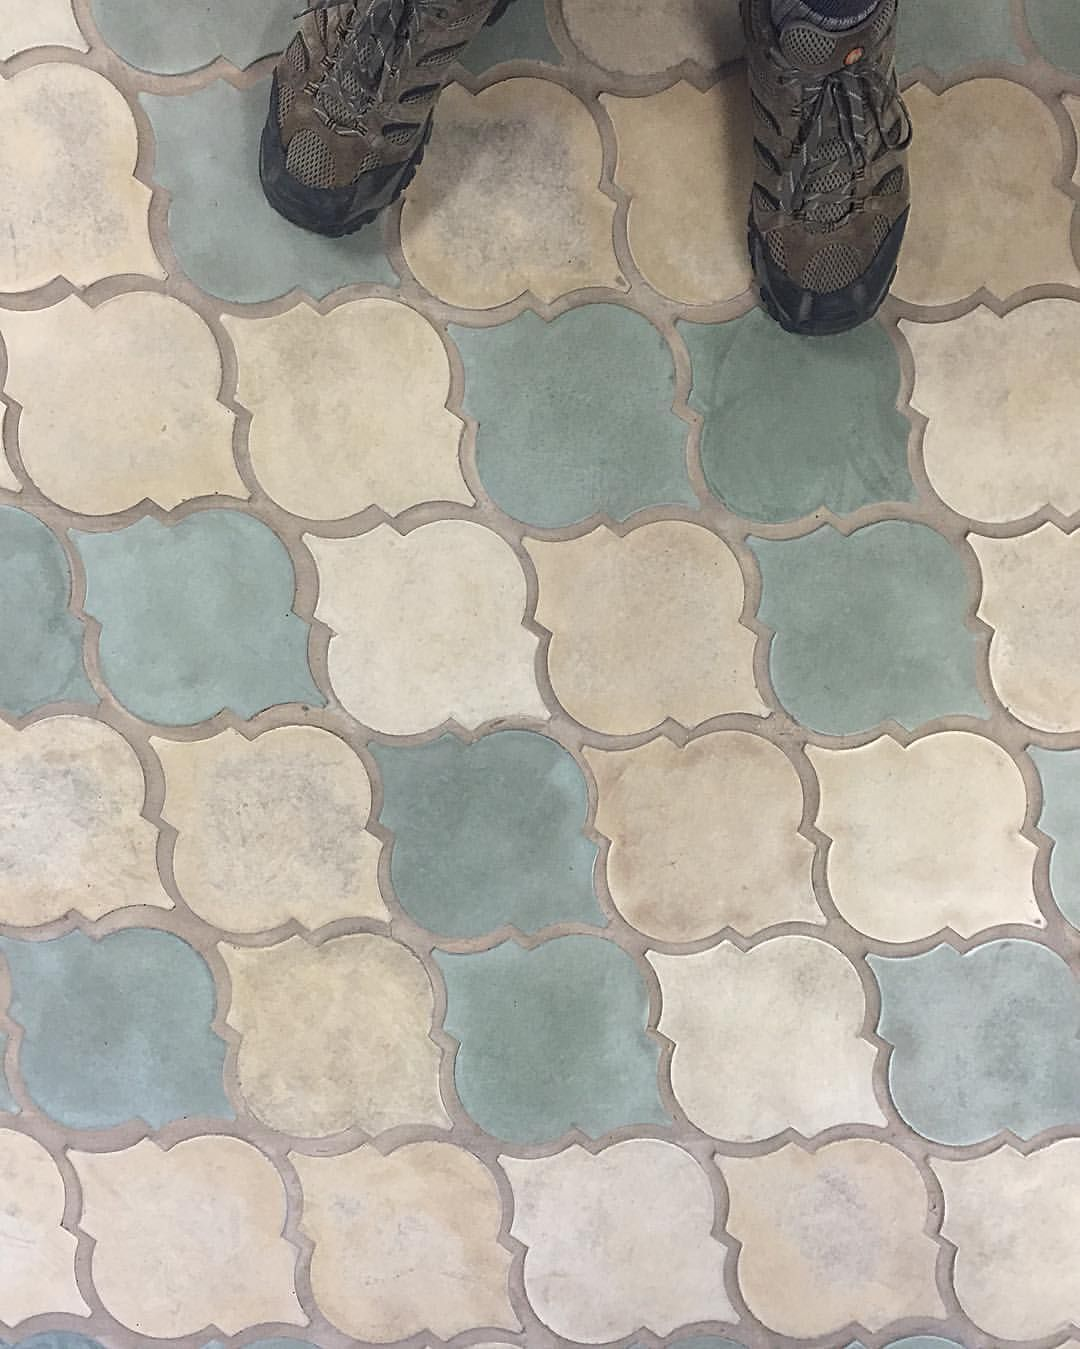 Pin by Rich on Tile | Pinterest | Bricks, Met and Instagram